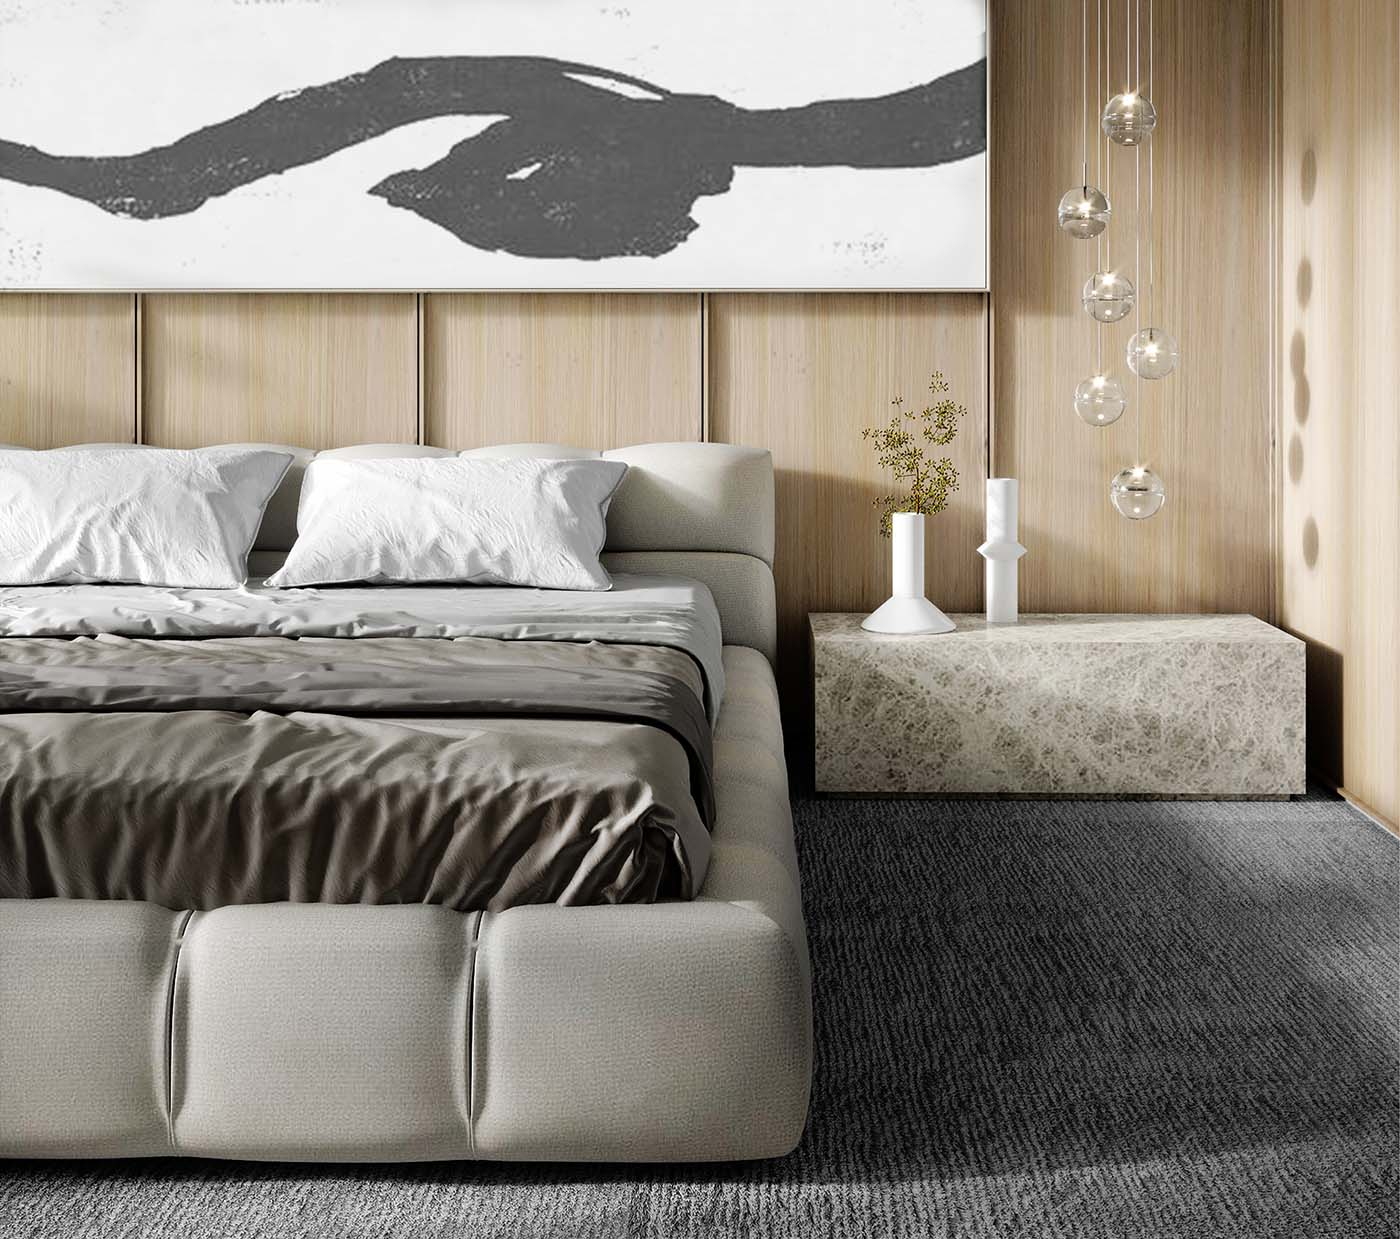 Bedroom using neutral colours with timber walls